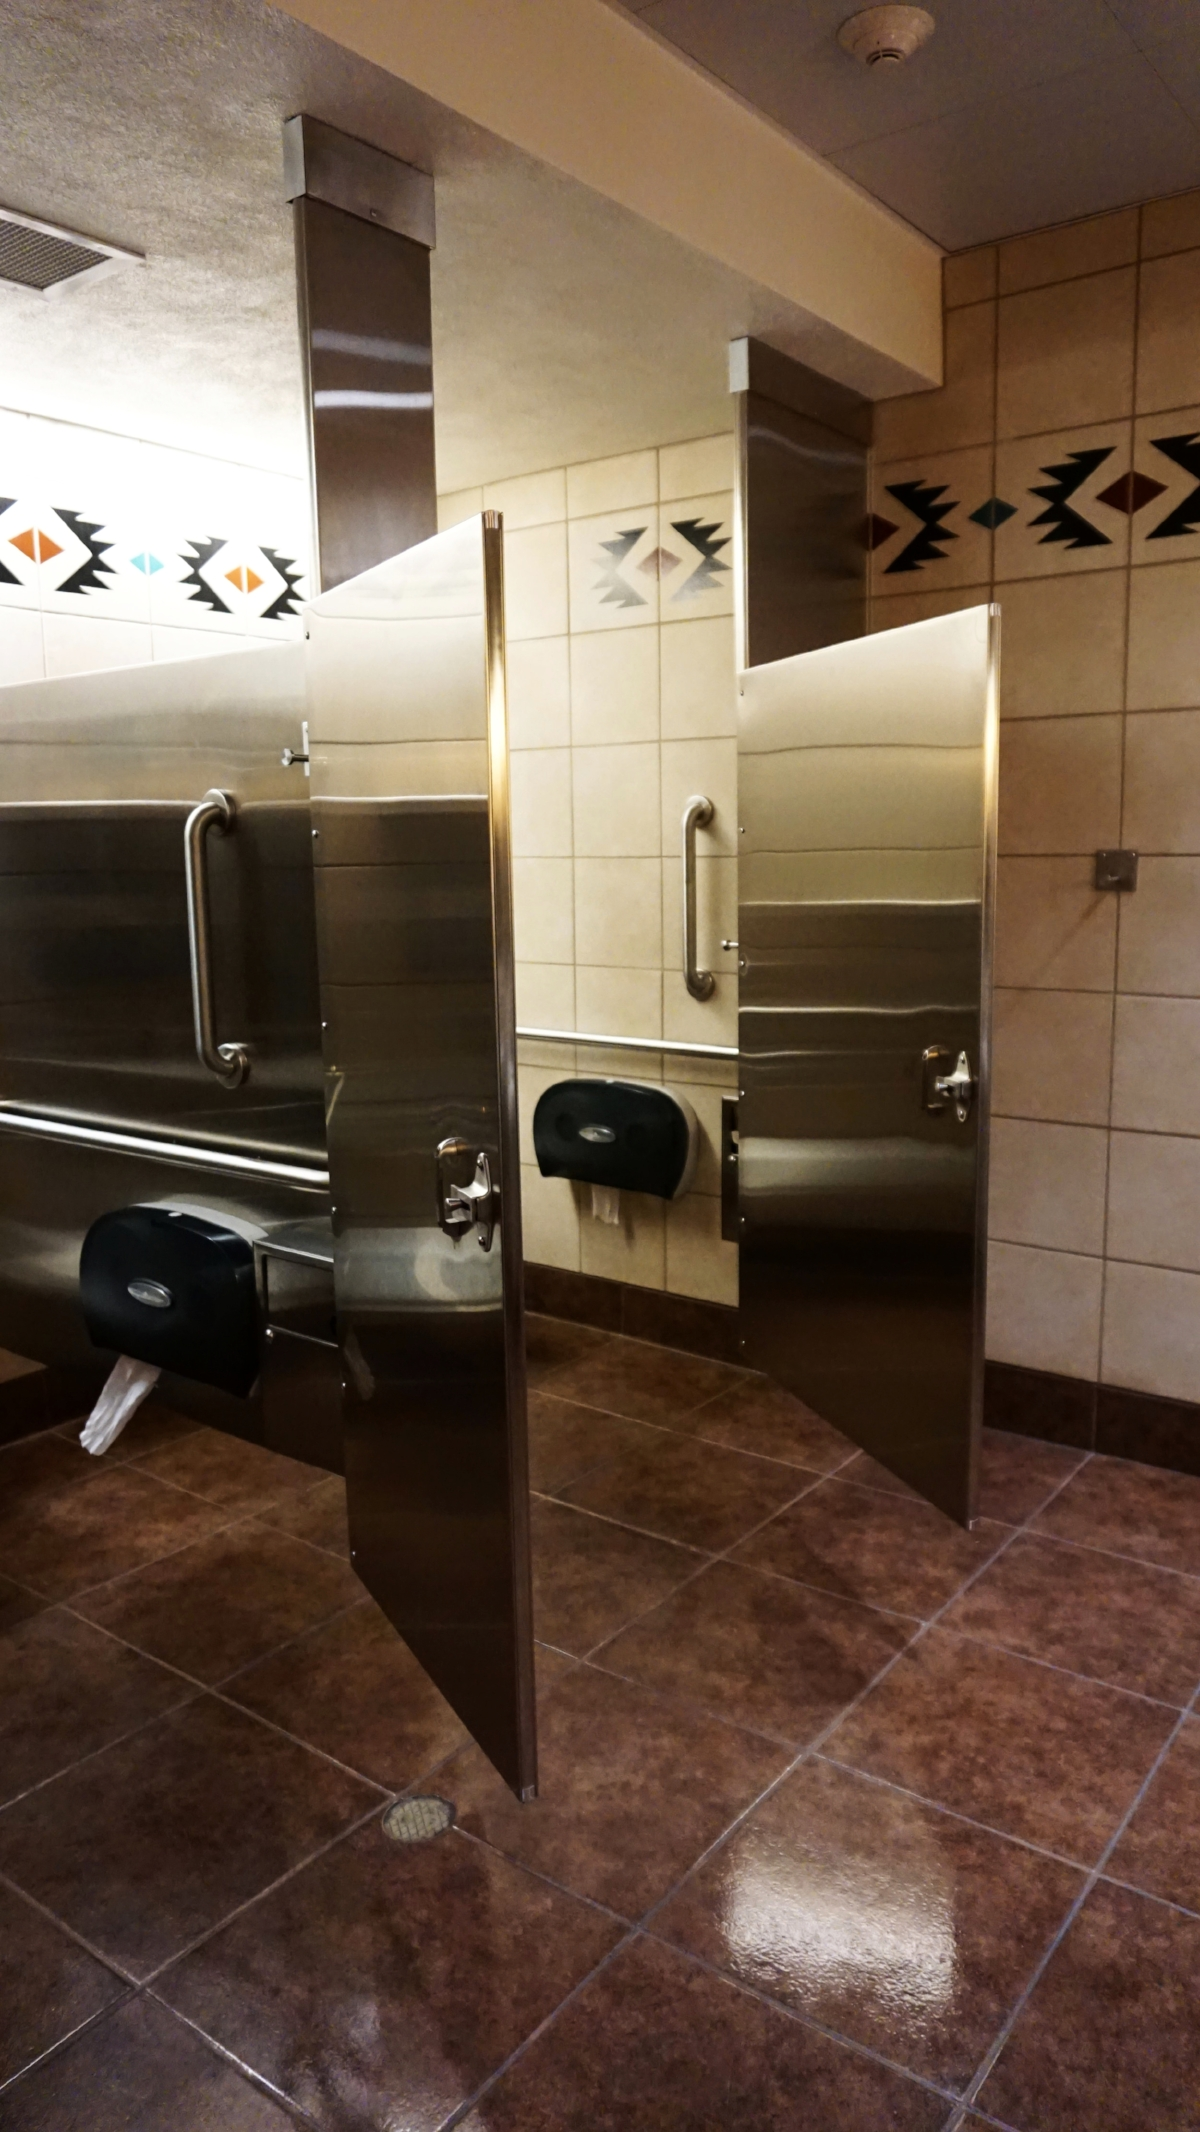 albuquerque int'l sunport bathroom, new mexico - Note that the doors open OUT. The lighting is beautiful and the bathrooms are always spotlessly clean.